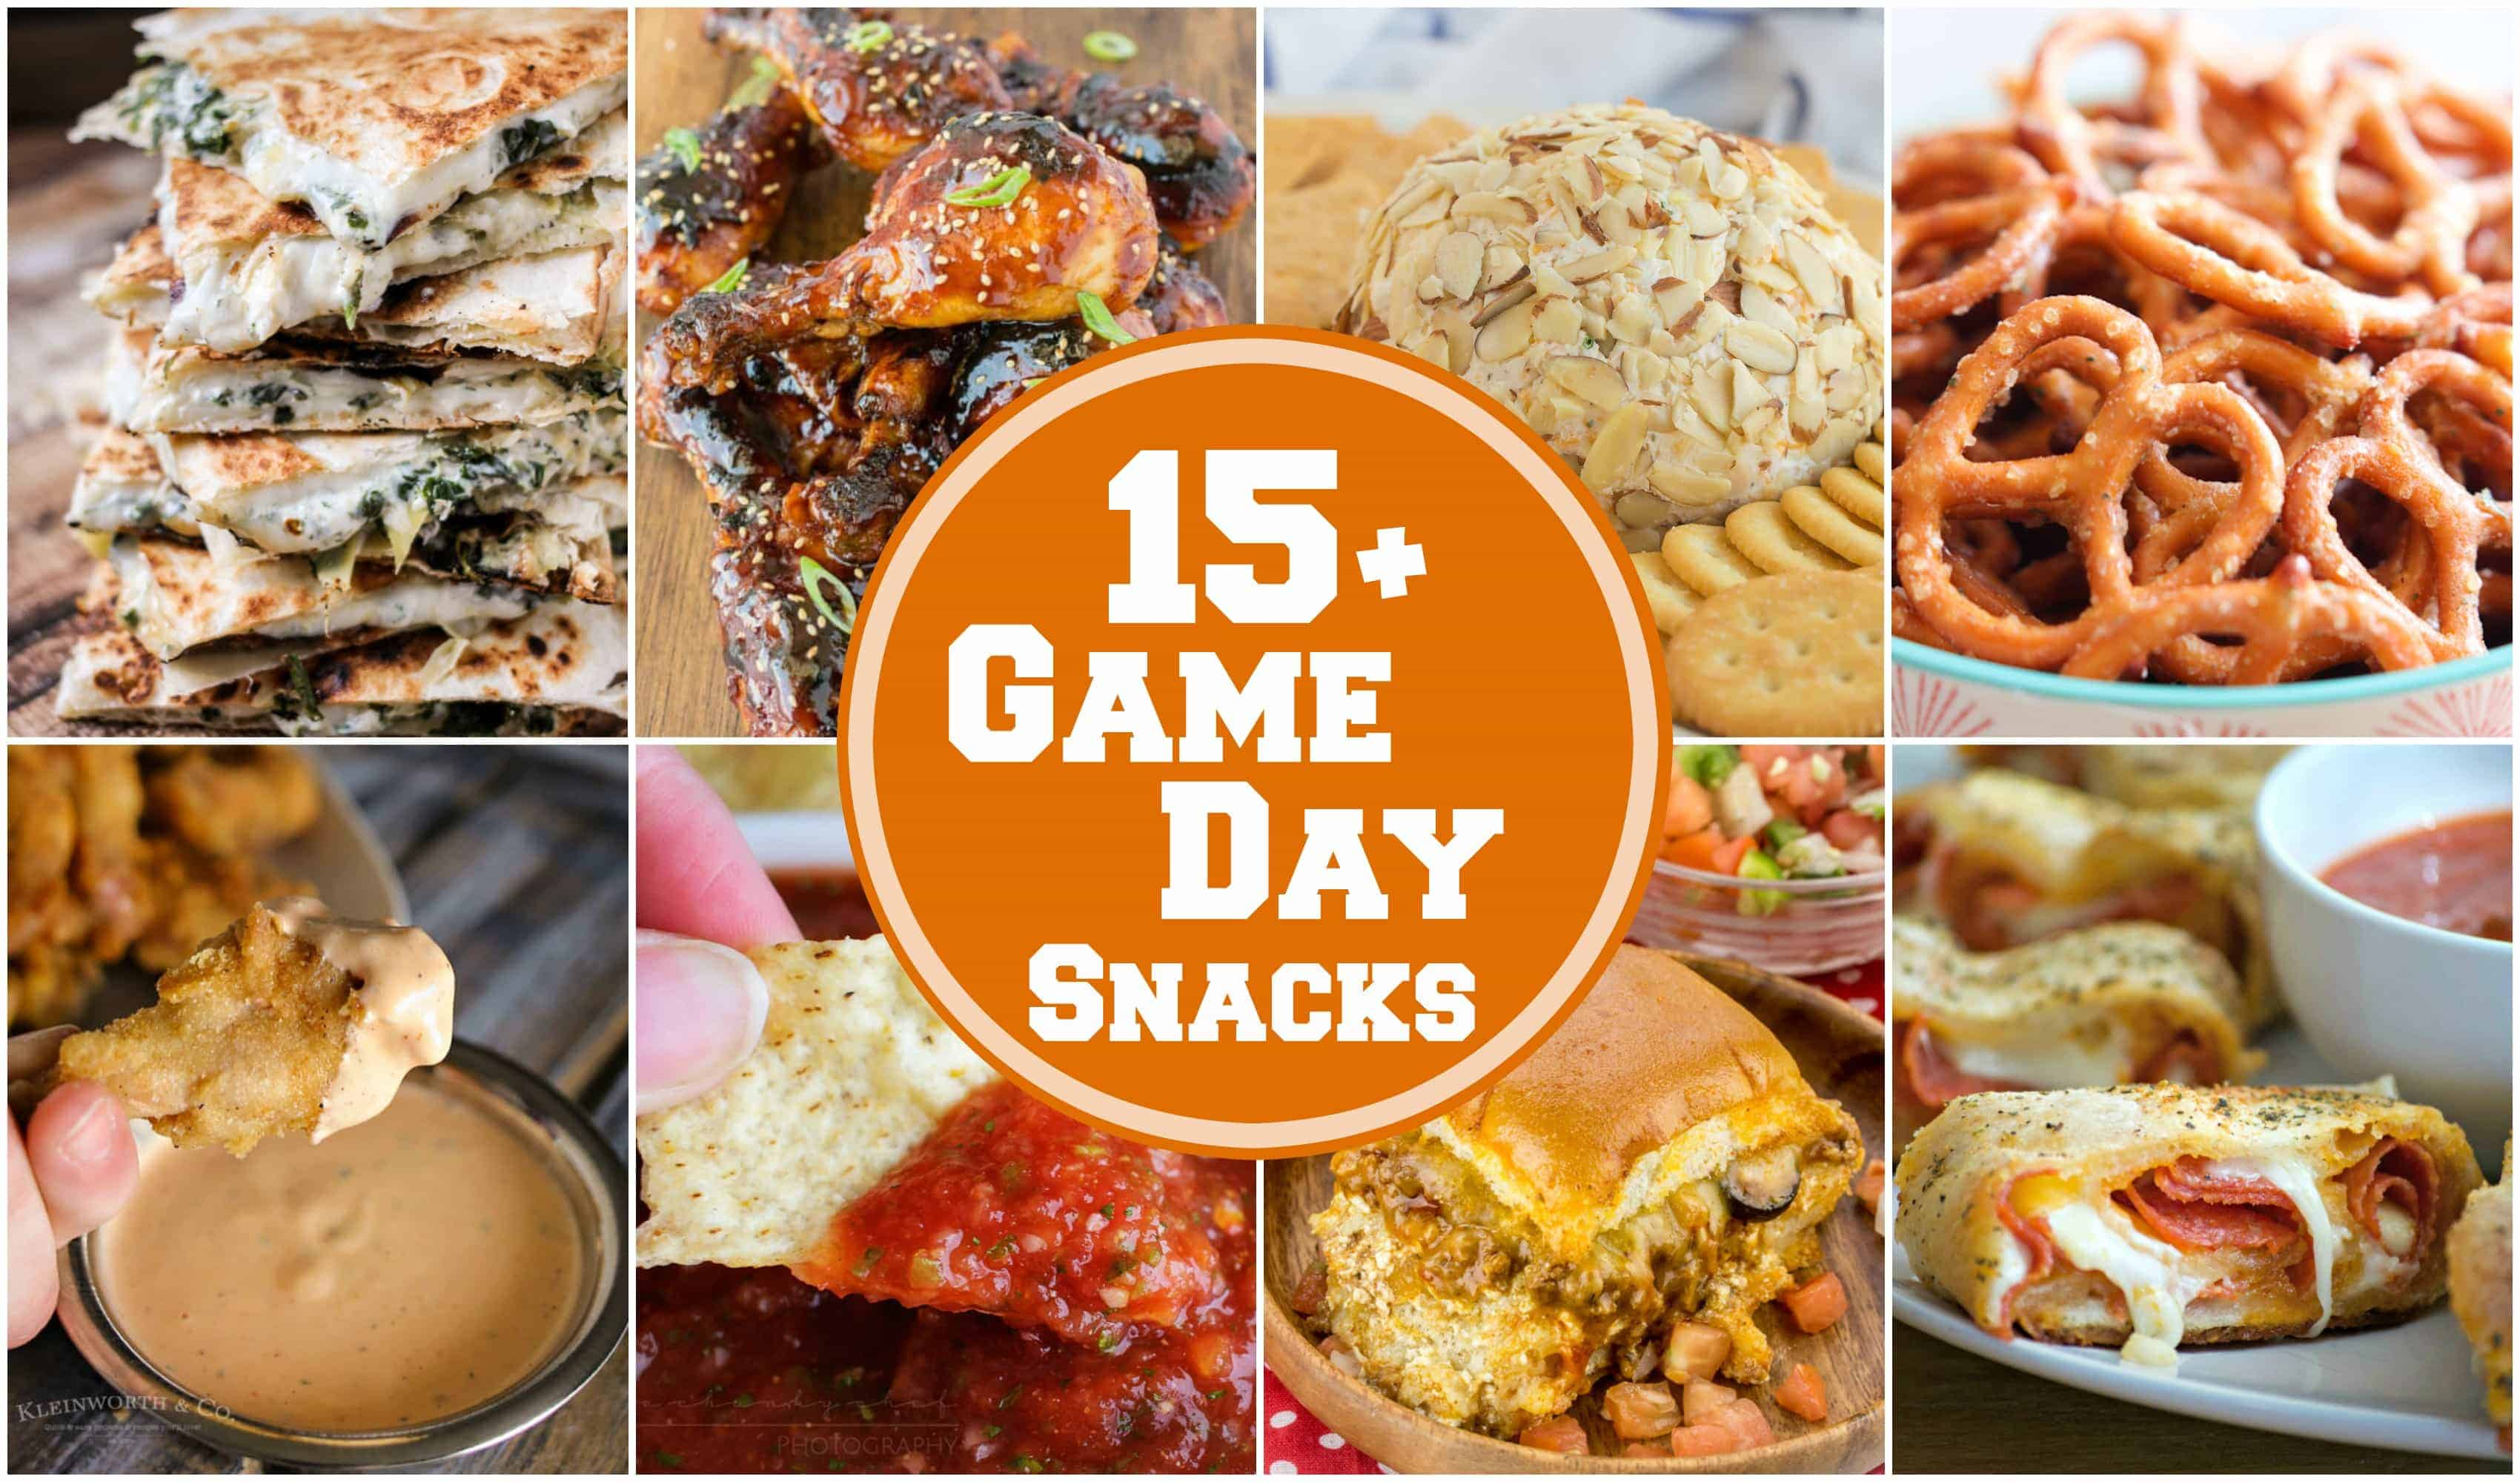 15+ Game Day Snacks to make sure your get-together is complete. With these finger foods from savory to sweet, no one will be going hungry at your party!